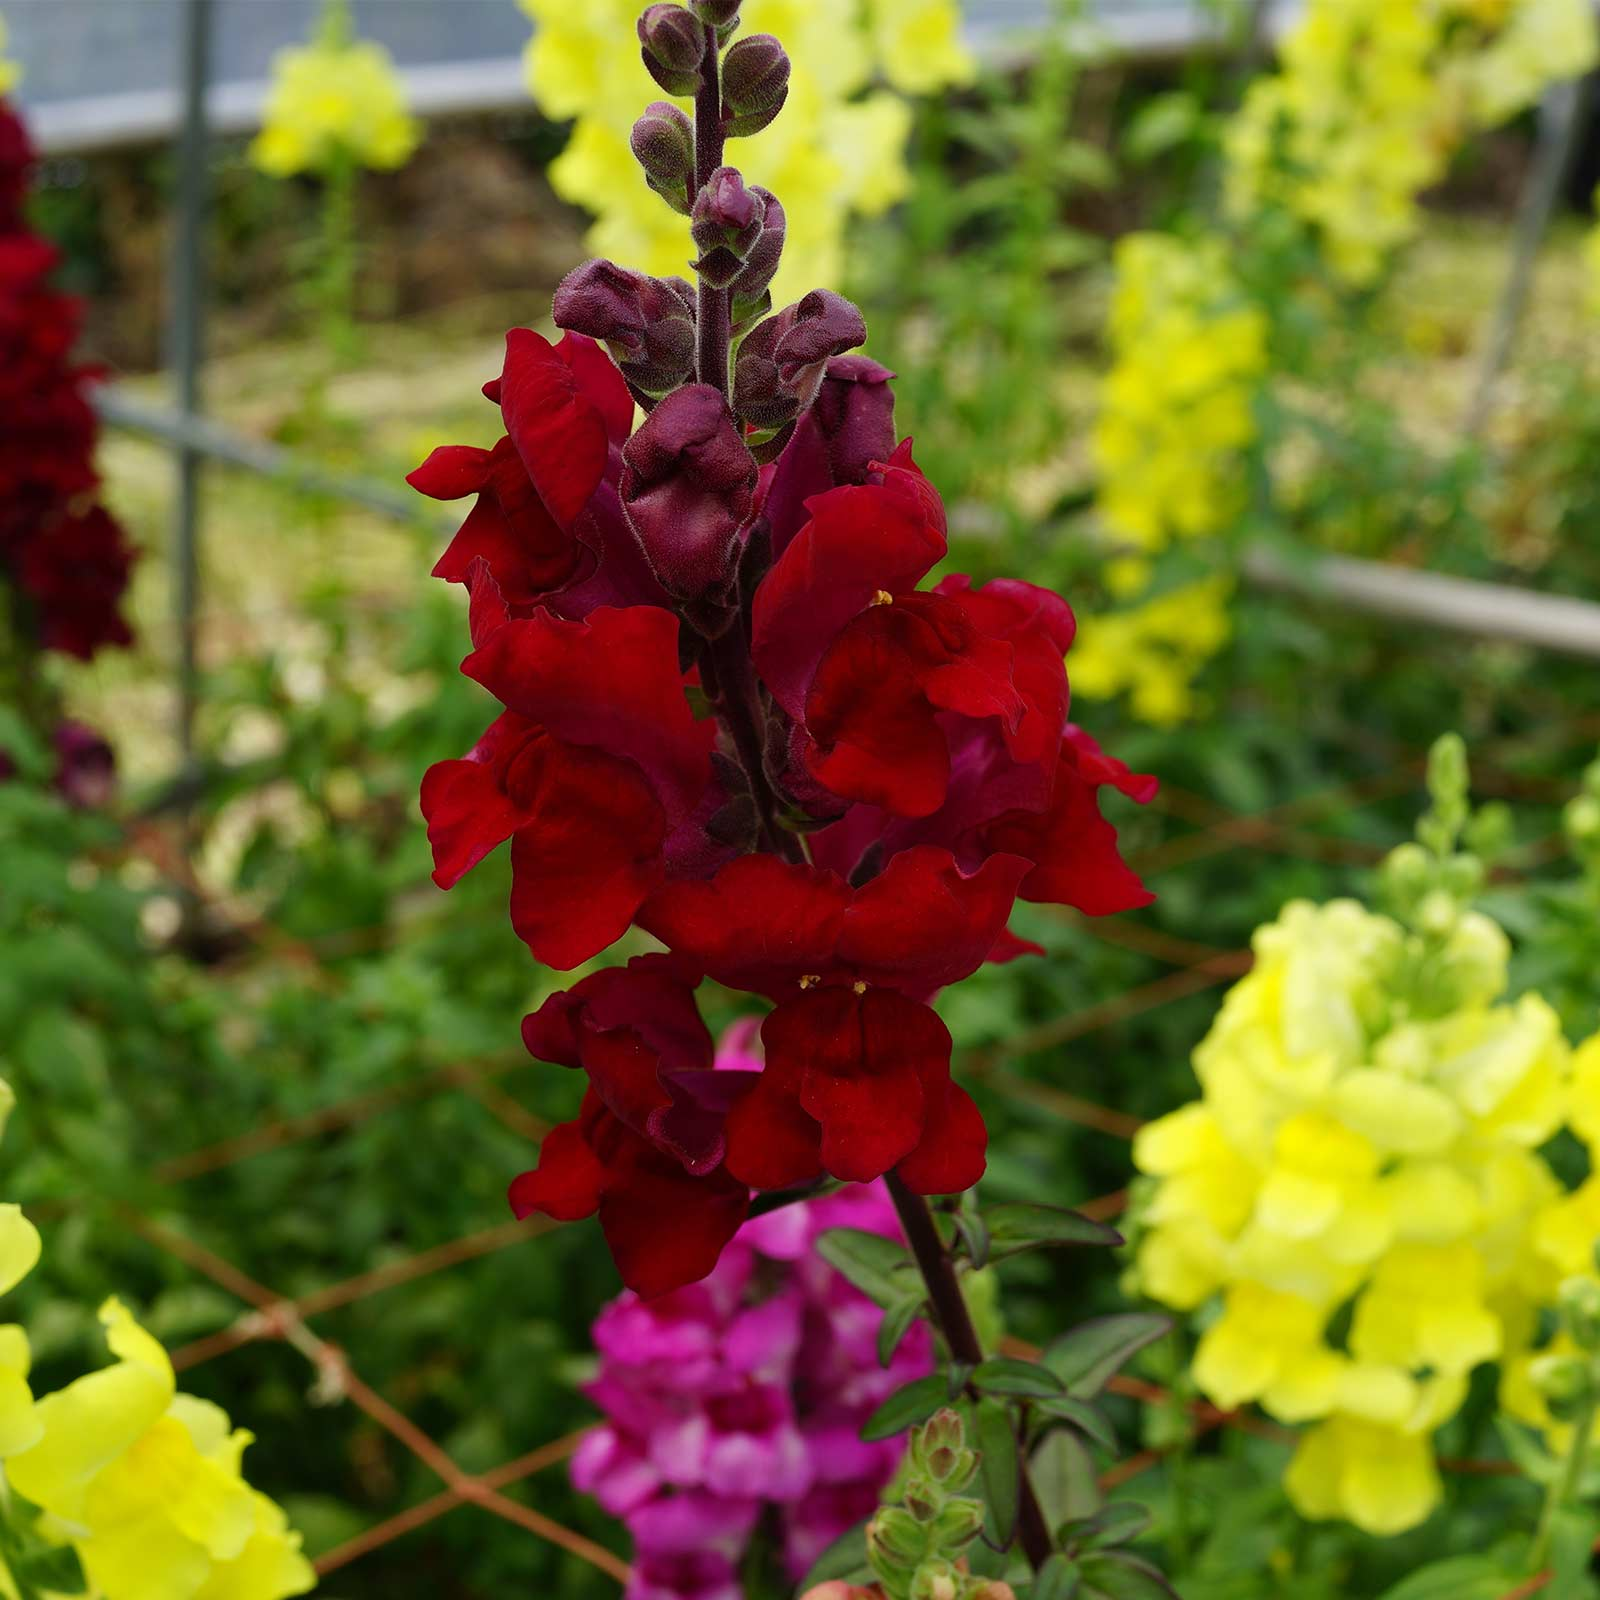 Snapdragon Flower Seeds Sonnet Series F1 Burgundy Annual Garden